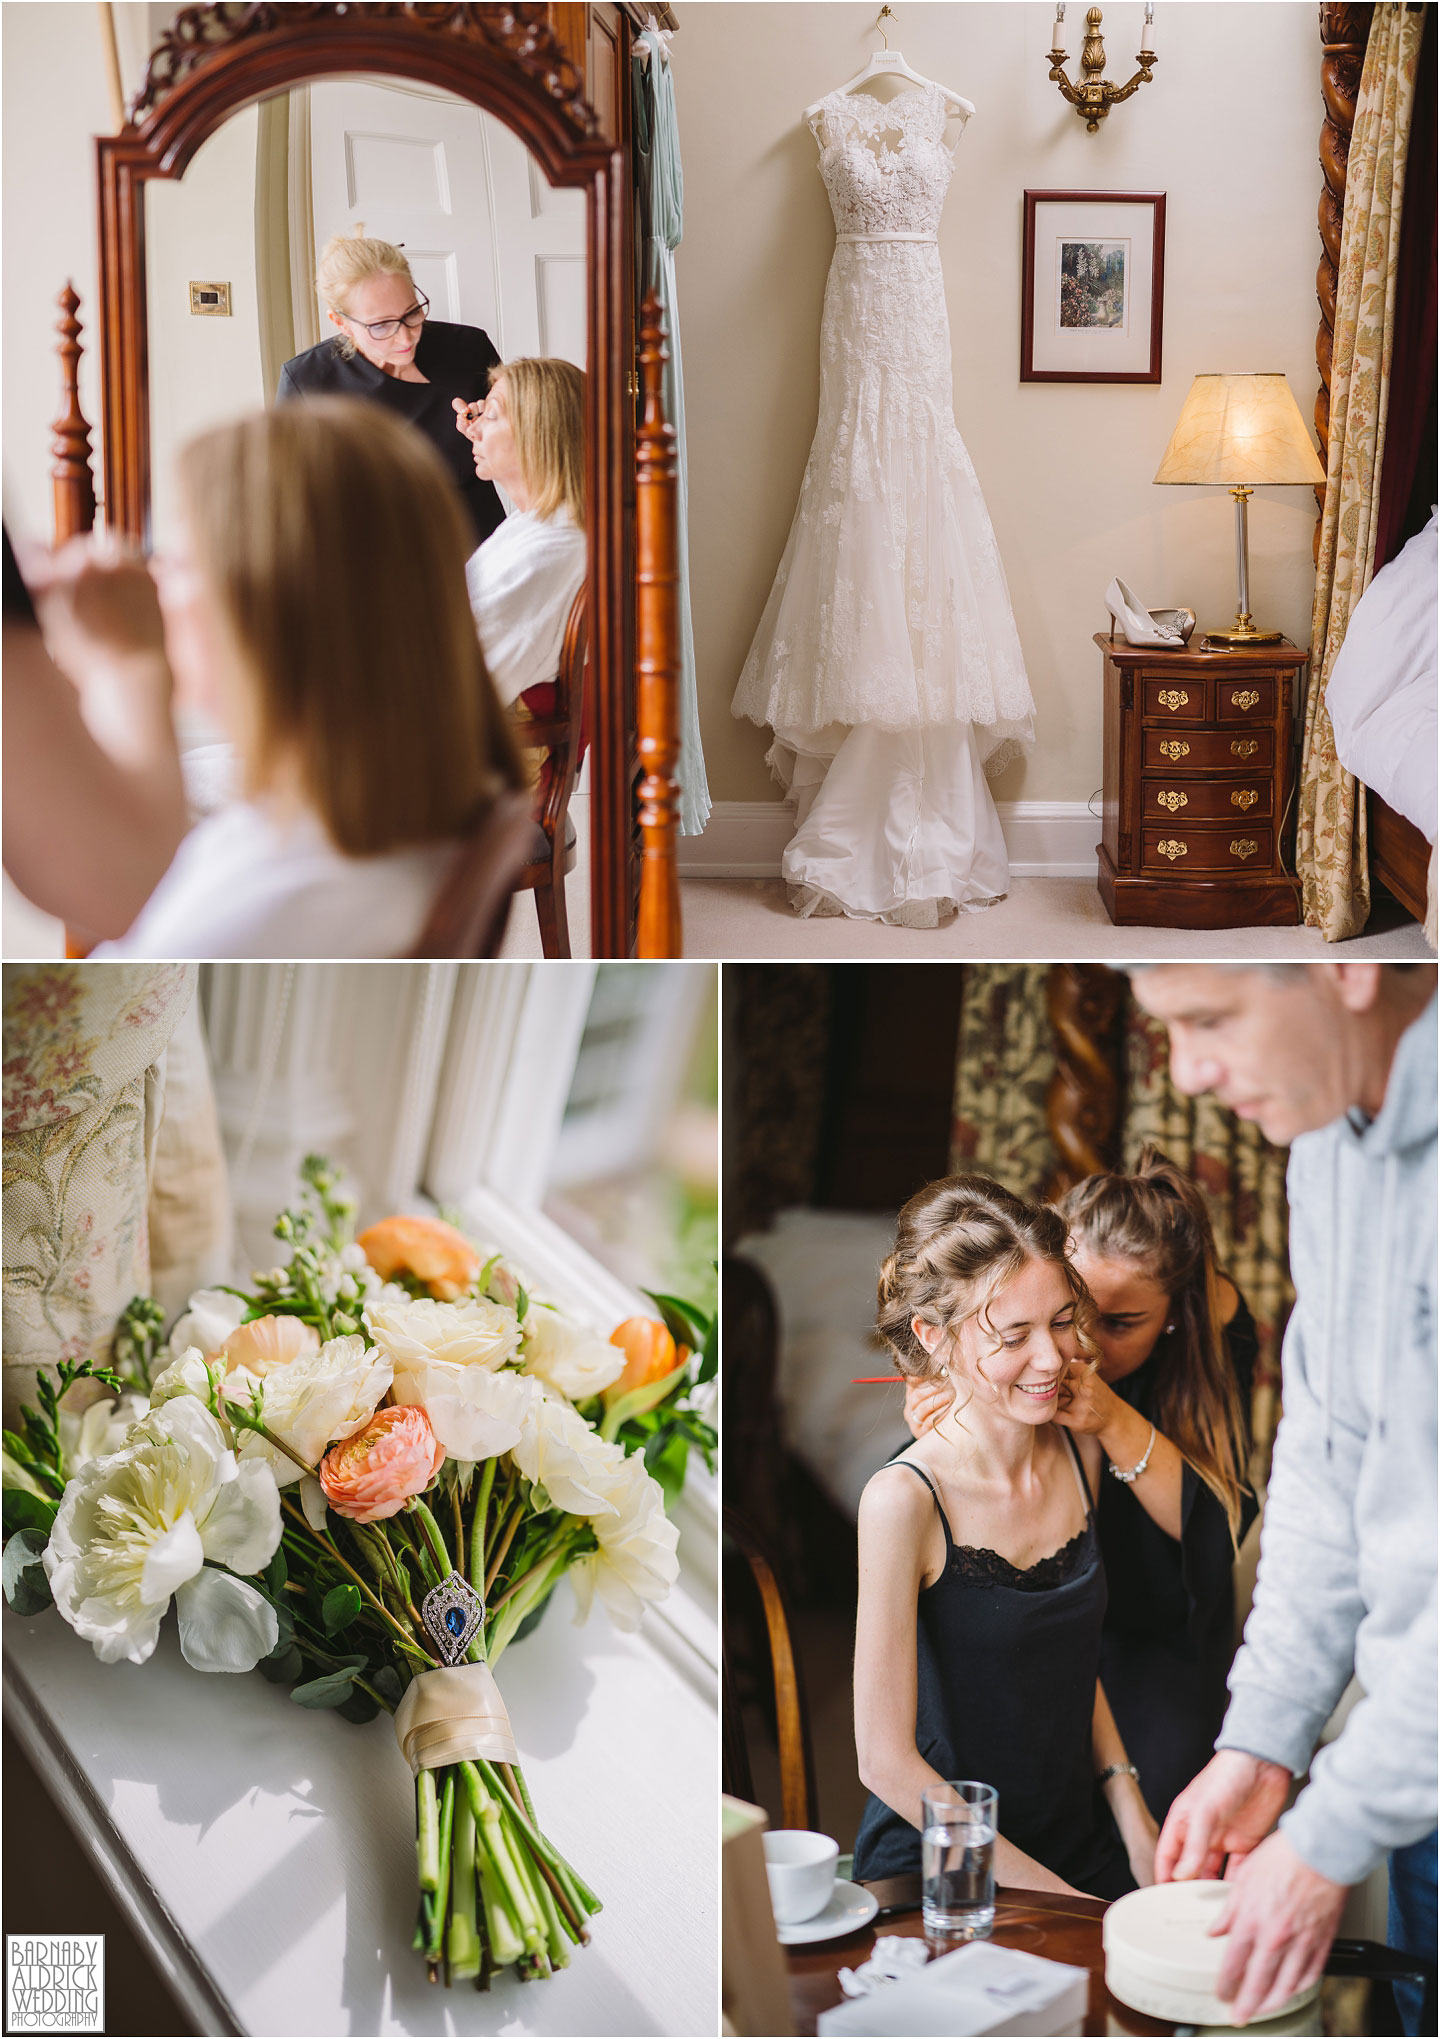 Bridal preparations at Goldsborough Hall stately home wedding venue near Harrogate and Knaresborough in North Yorkshire